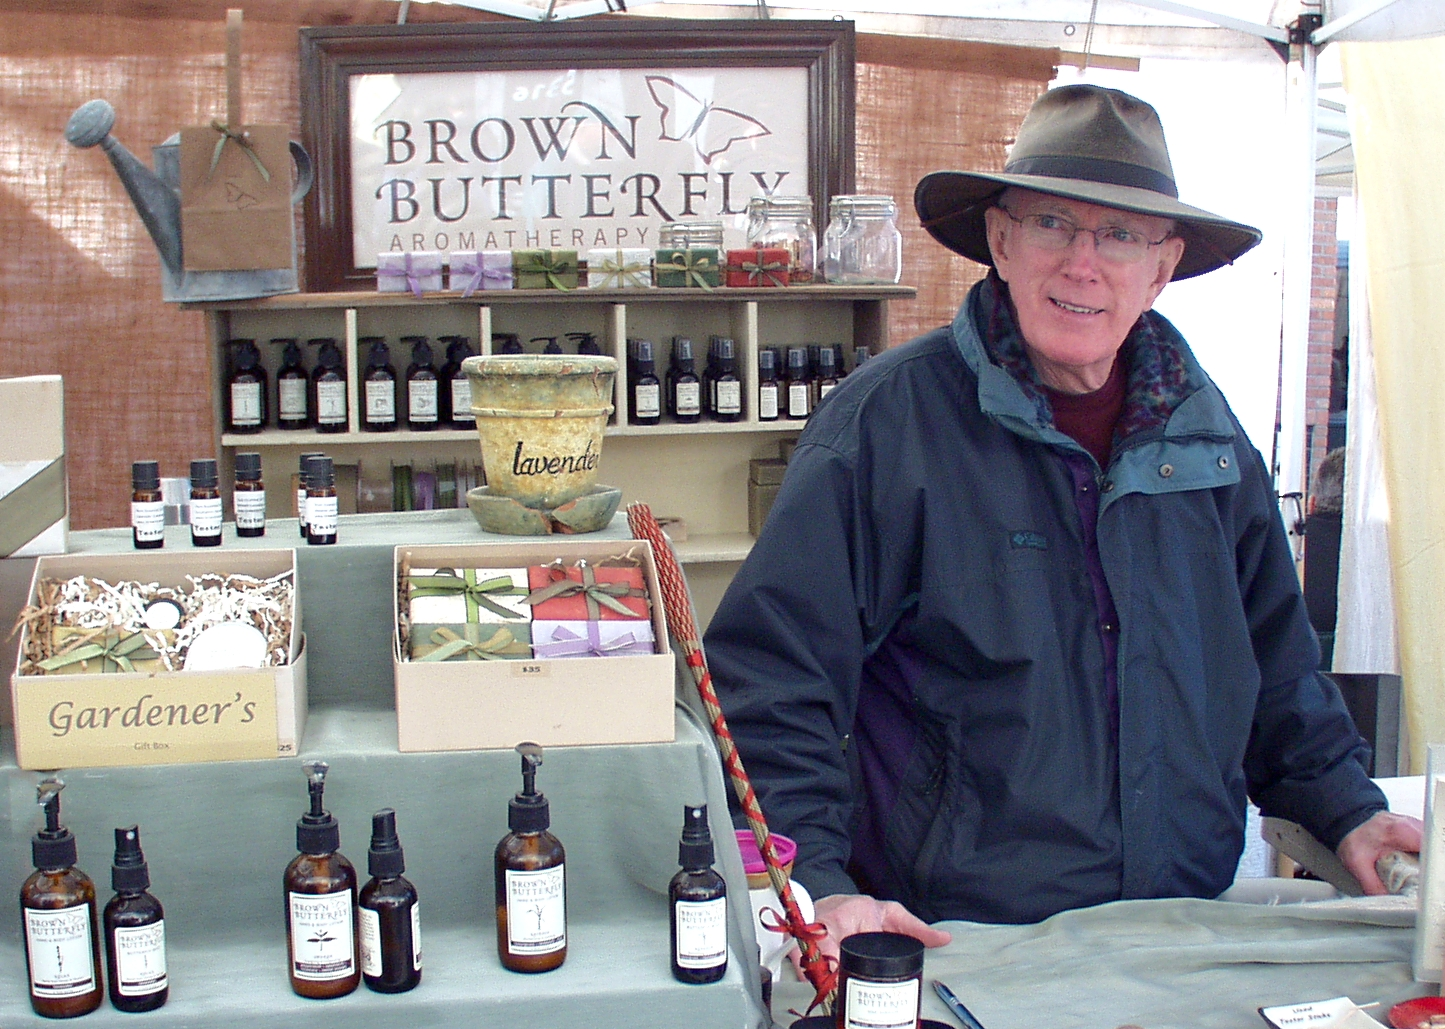 Fran from Brown Butterfly Aromatherapy at Ballard Farmers Market. Copyright Zachary D. Lyons.